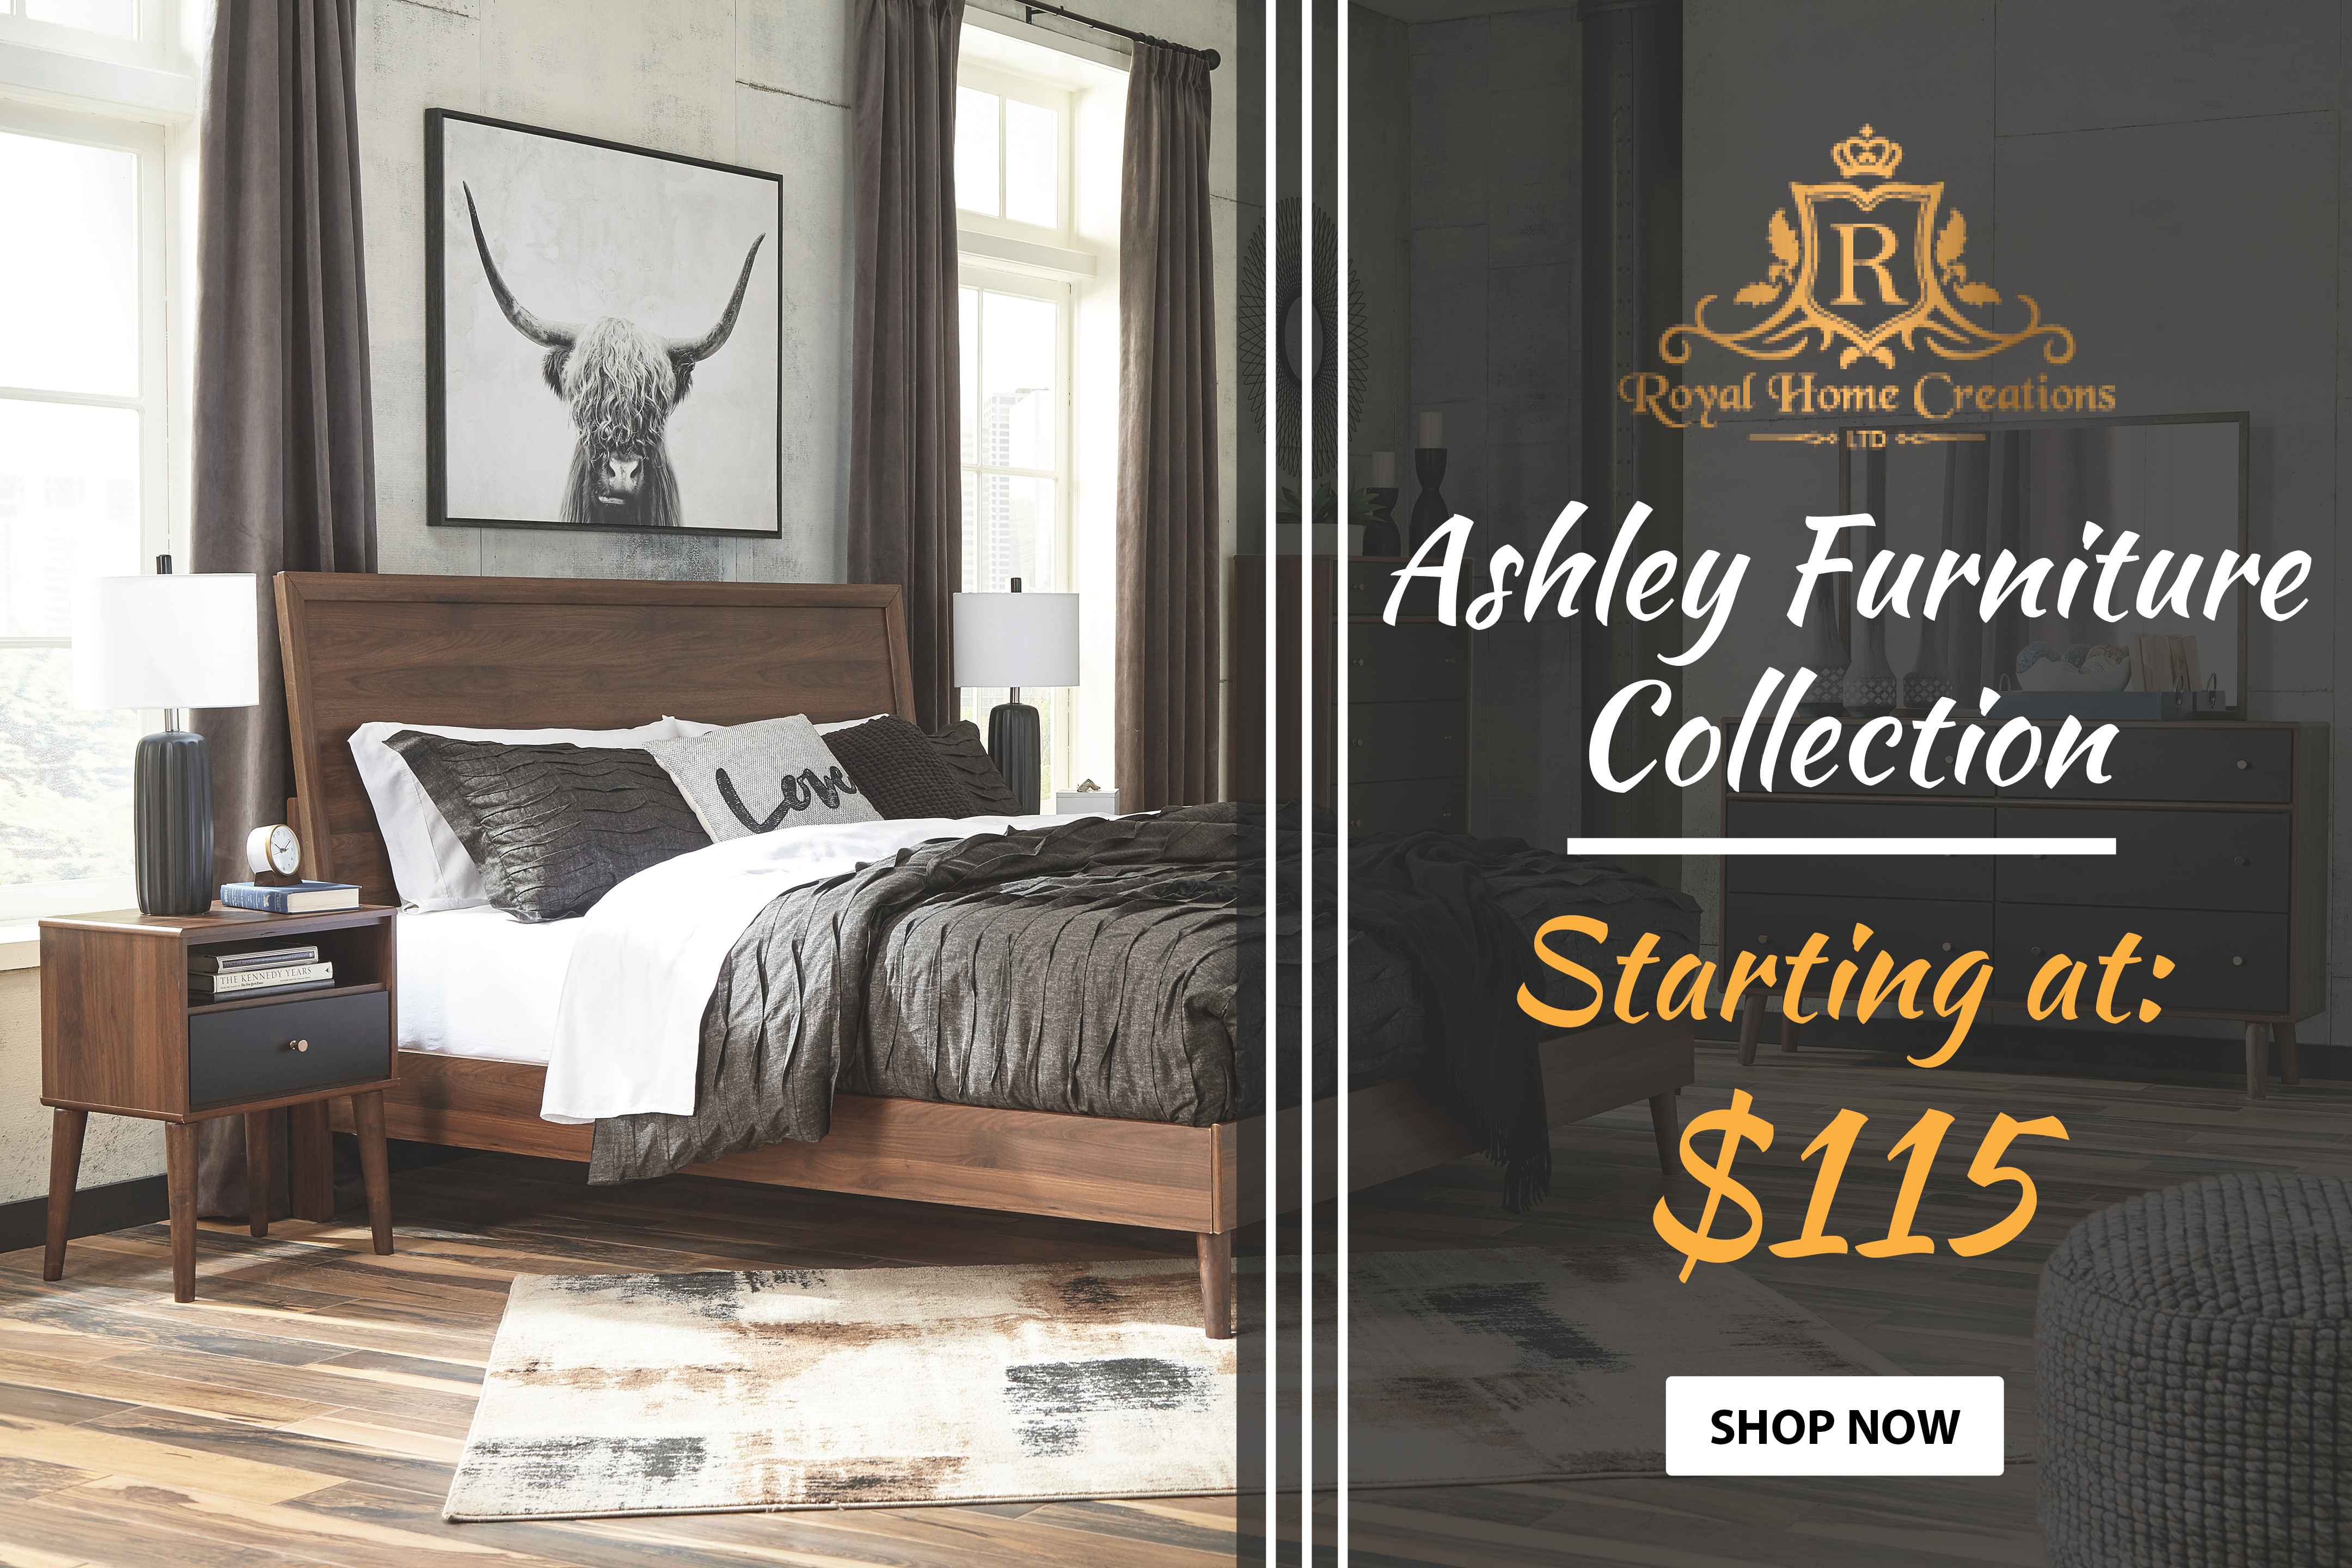 Are You Looking For Ashley Home Furniture In Vancouver So Why Are